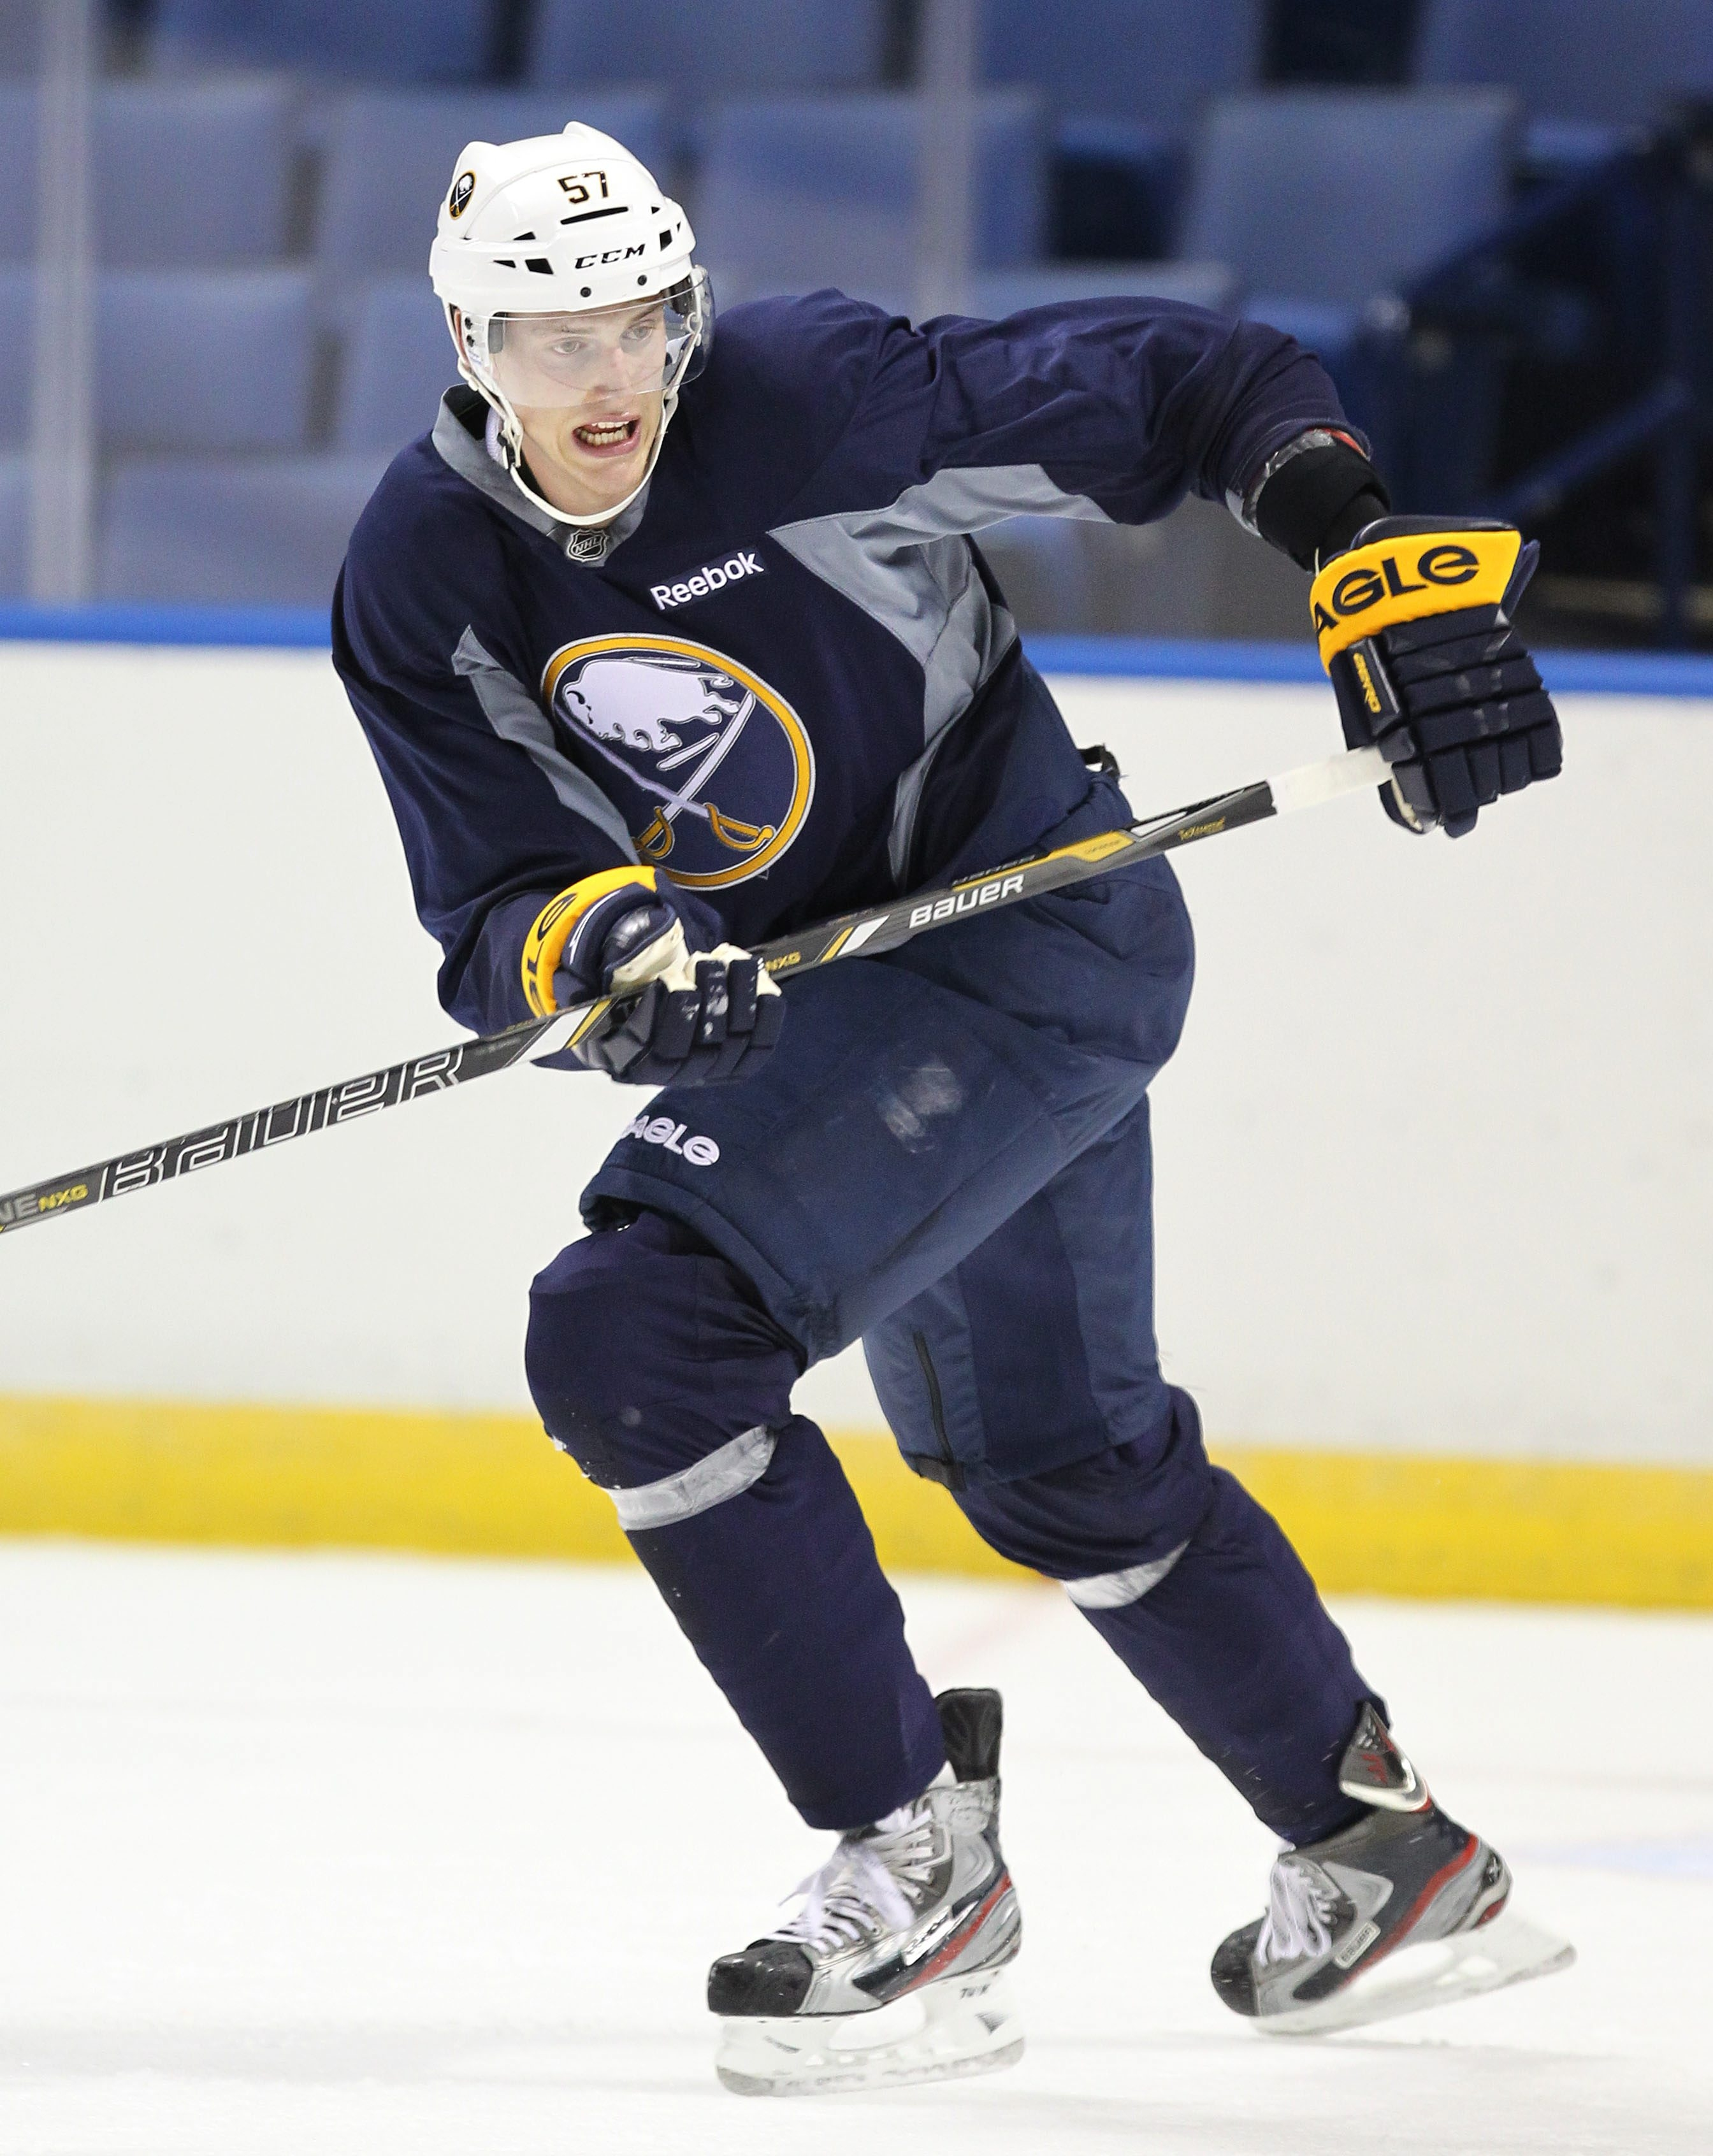 Sabres defenseman Tyler Myers says he is in better physical and mental shape this season.